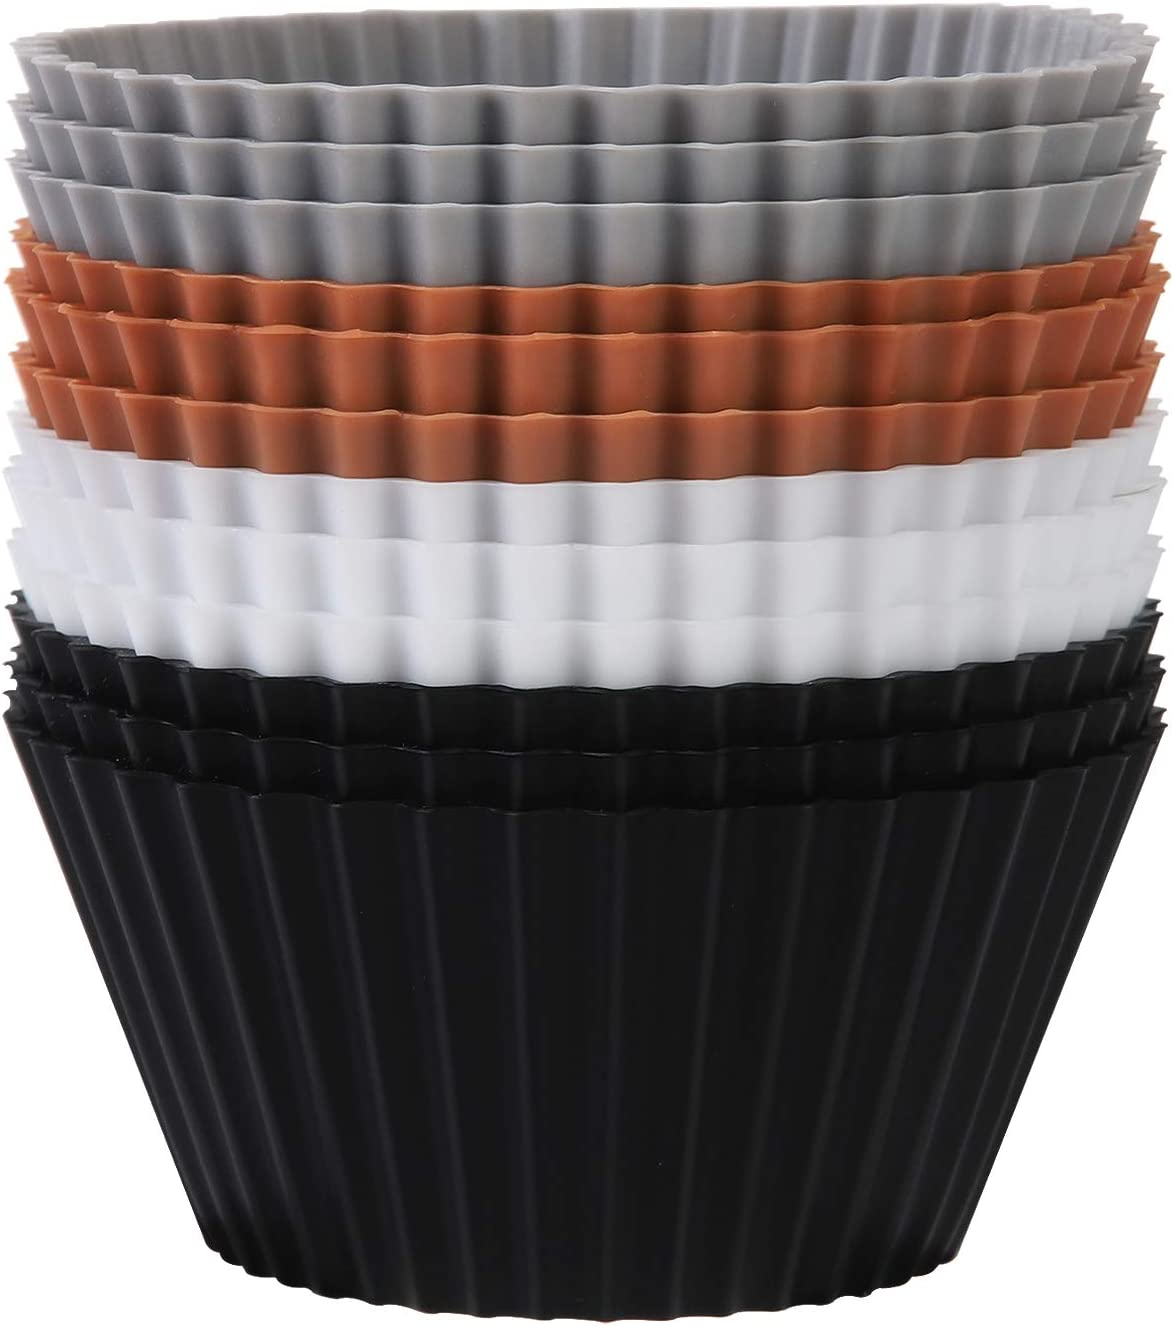 SARTNP Cheap super special price Max 49% OFF Silicone Cupcake Baking Cups 12 Pack Heavy Duty